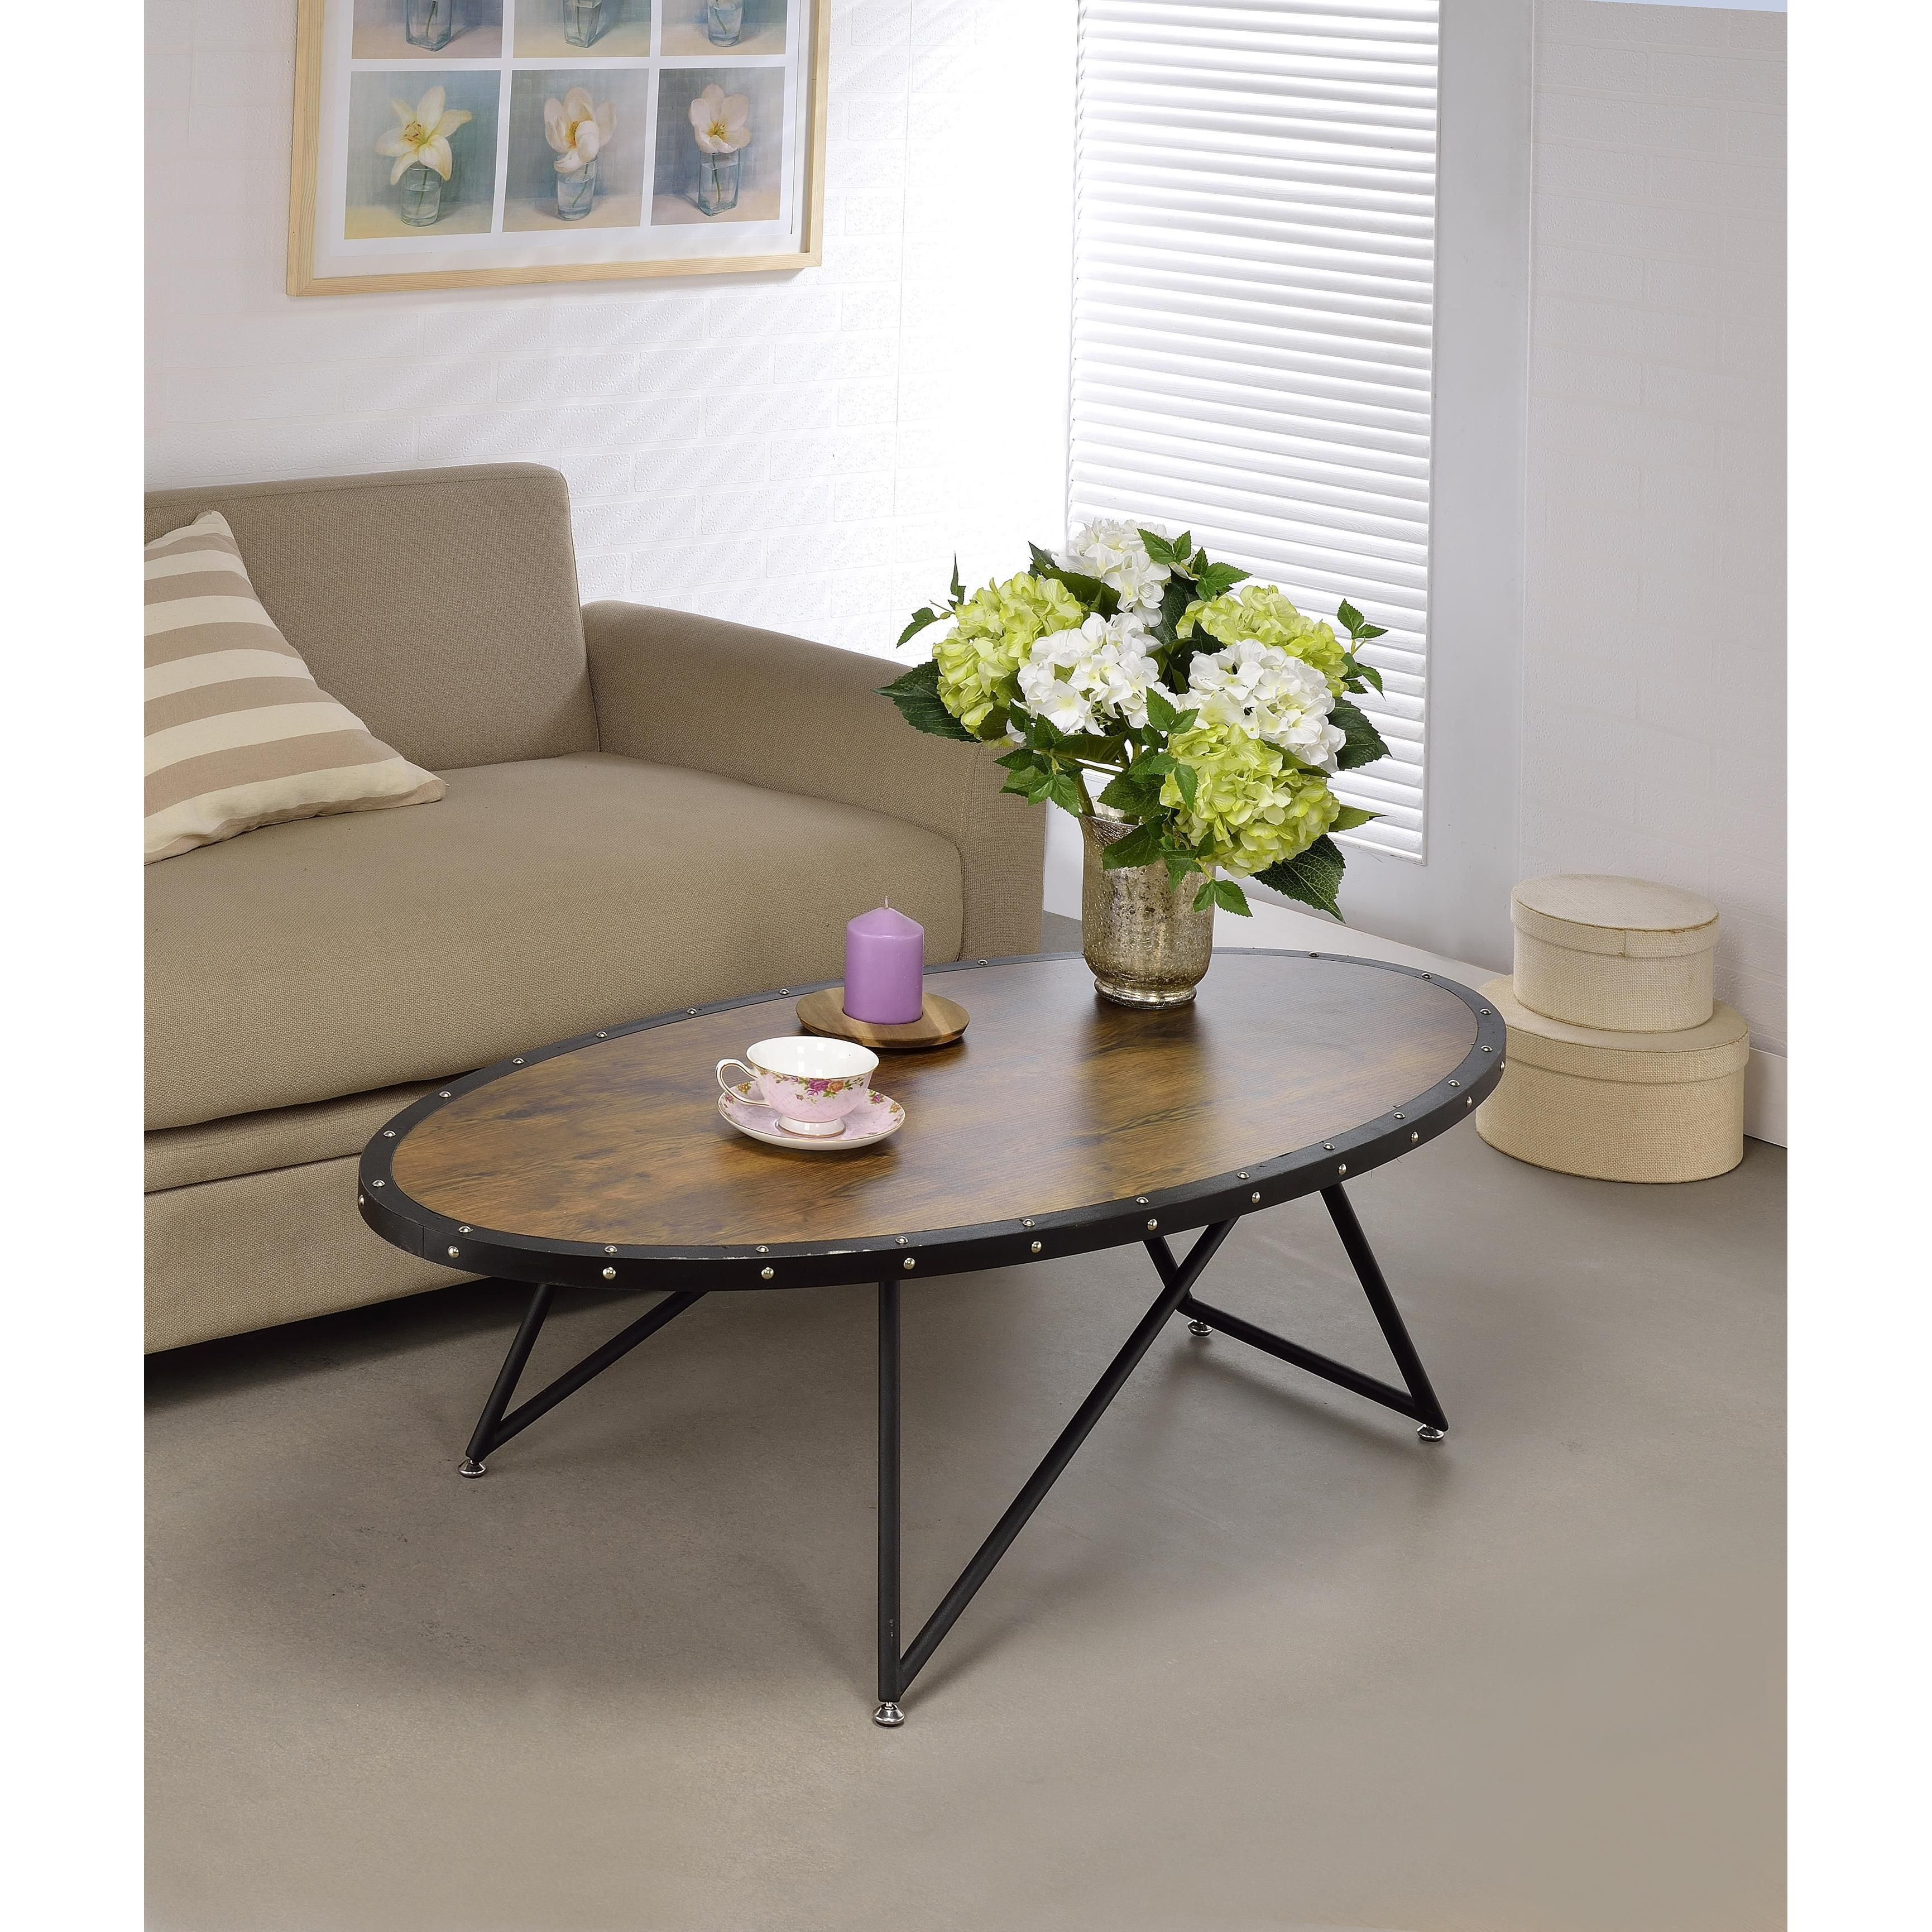 Overstock Com Online Shopping Bedding Furniture Electronics Jewelry Clothing More Retro Coffee Tables Oval Coffee Tables Coffee Table [ 3461 x 3461 Pixel ]